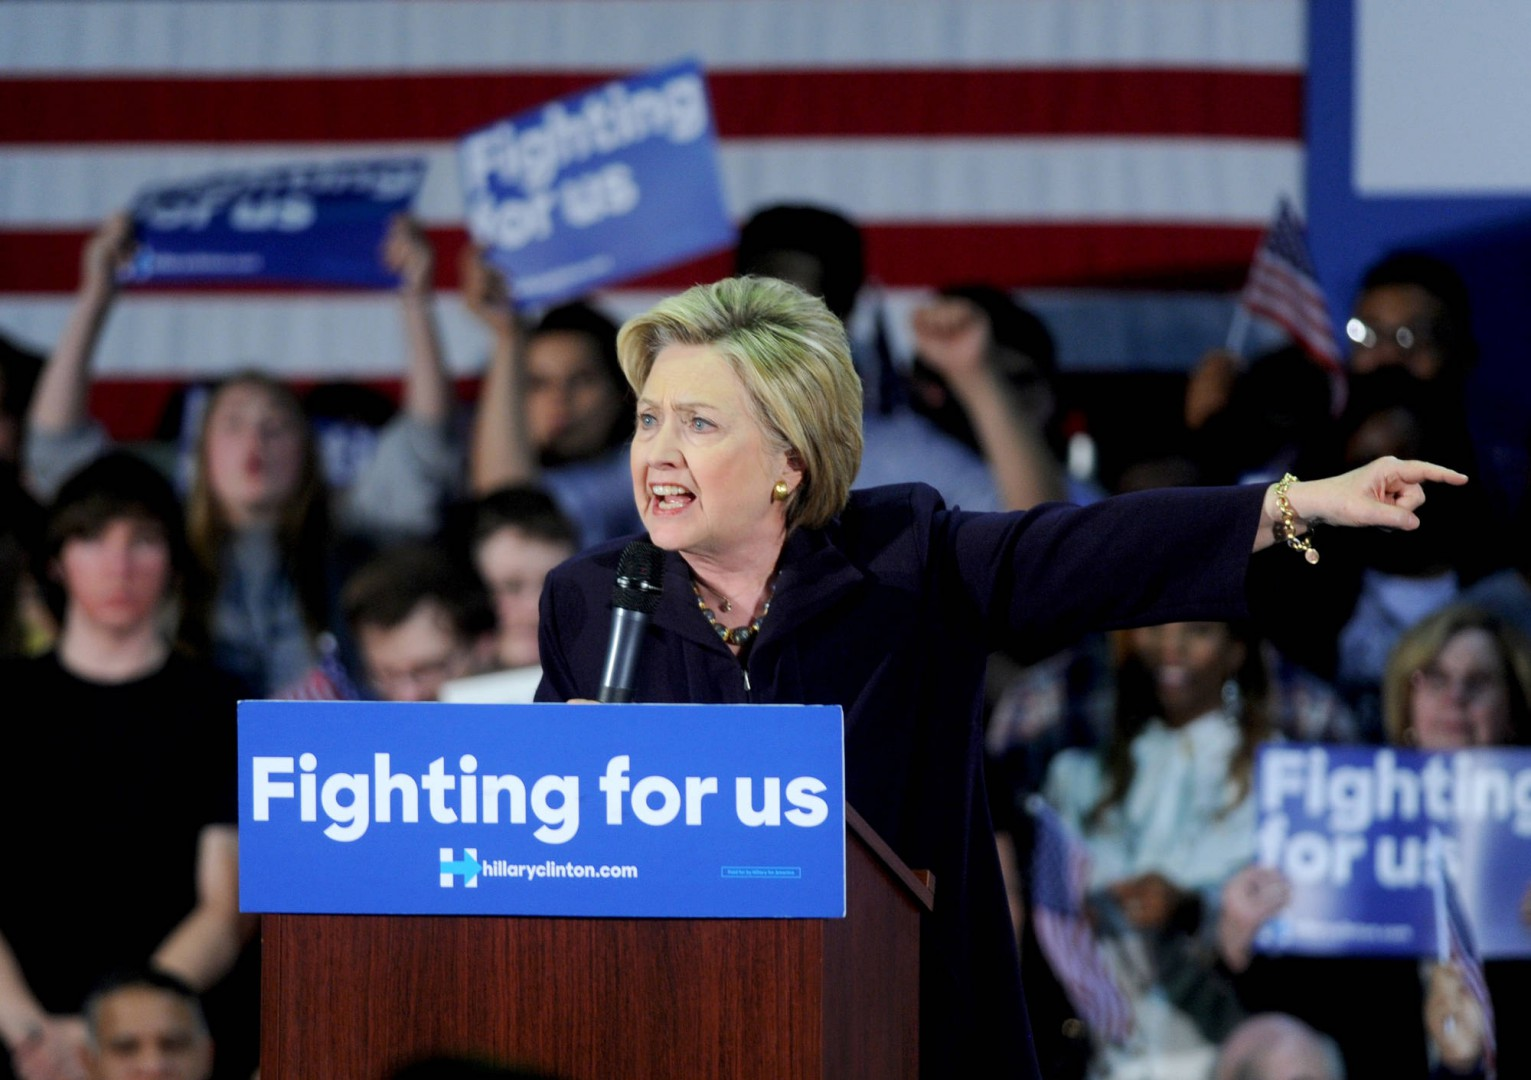 DEMOCRATIC PRESIDENTIAL CANDIDATE HILLARY CLINTON SPEAKS AT A CAMPAIGN EVENT AT CAMDEN COUNTY COLLEGE ON MAY 11, 2016 IN BLACKWOOD, NJ, USA. RESIDENTS OF NEW JERSEY WILL VOTE IN THE DEMOCRATIC PRIMARY ON JUNE 7, 2016. PHOTO BY DENNIS VAN TINE